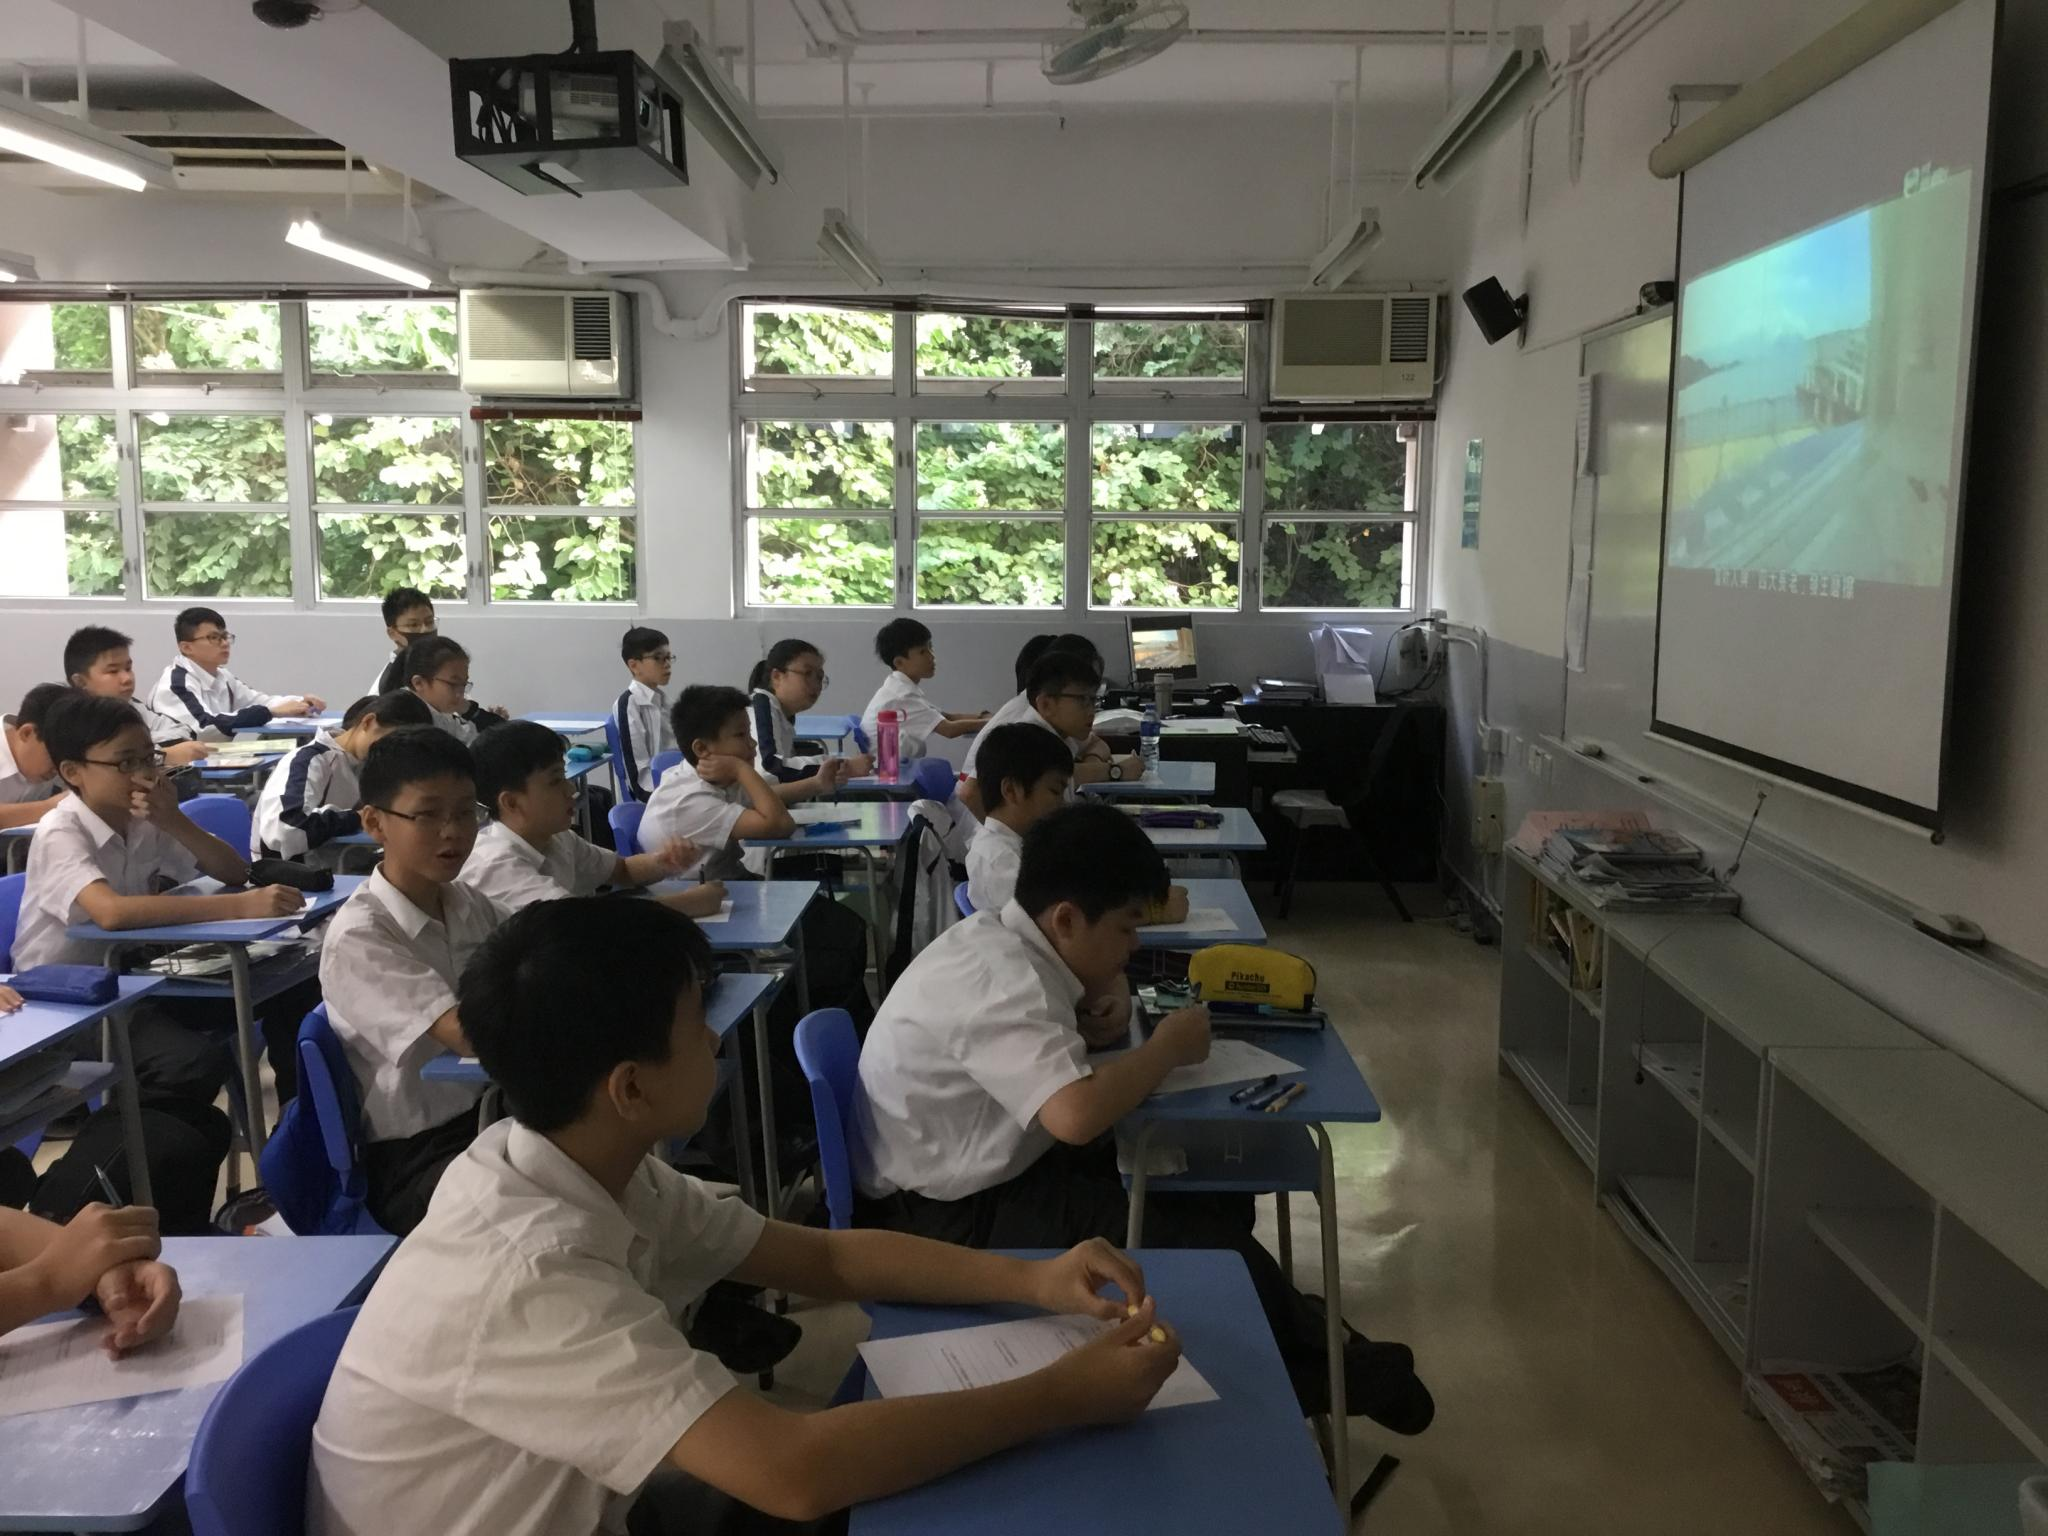 Students were watching the video made by the Career Ambassador.